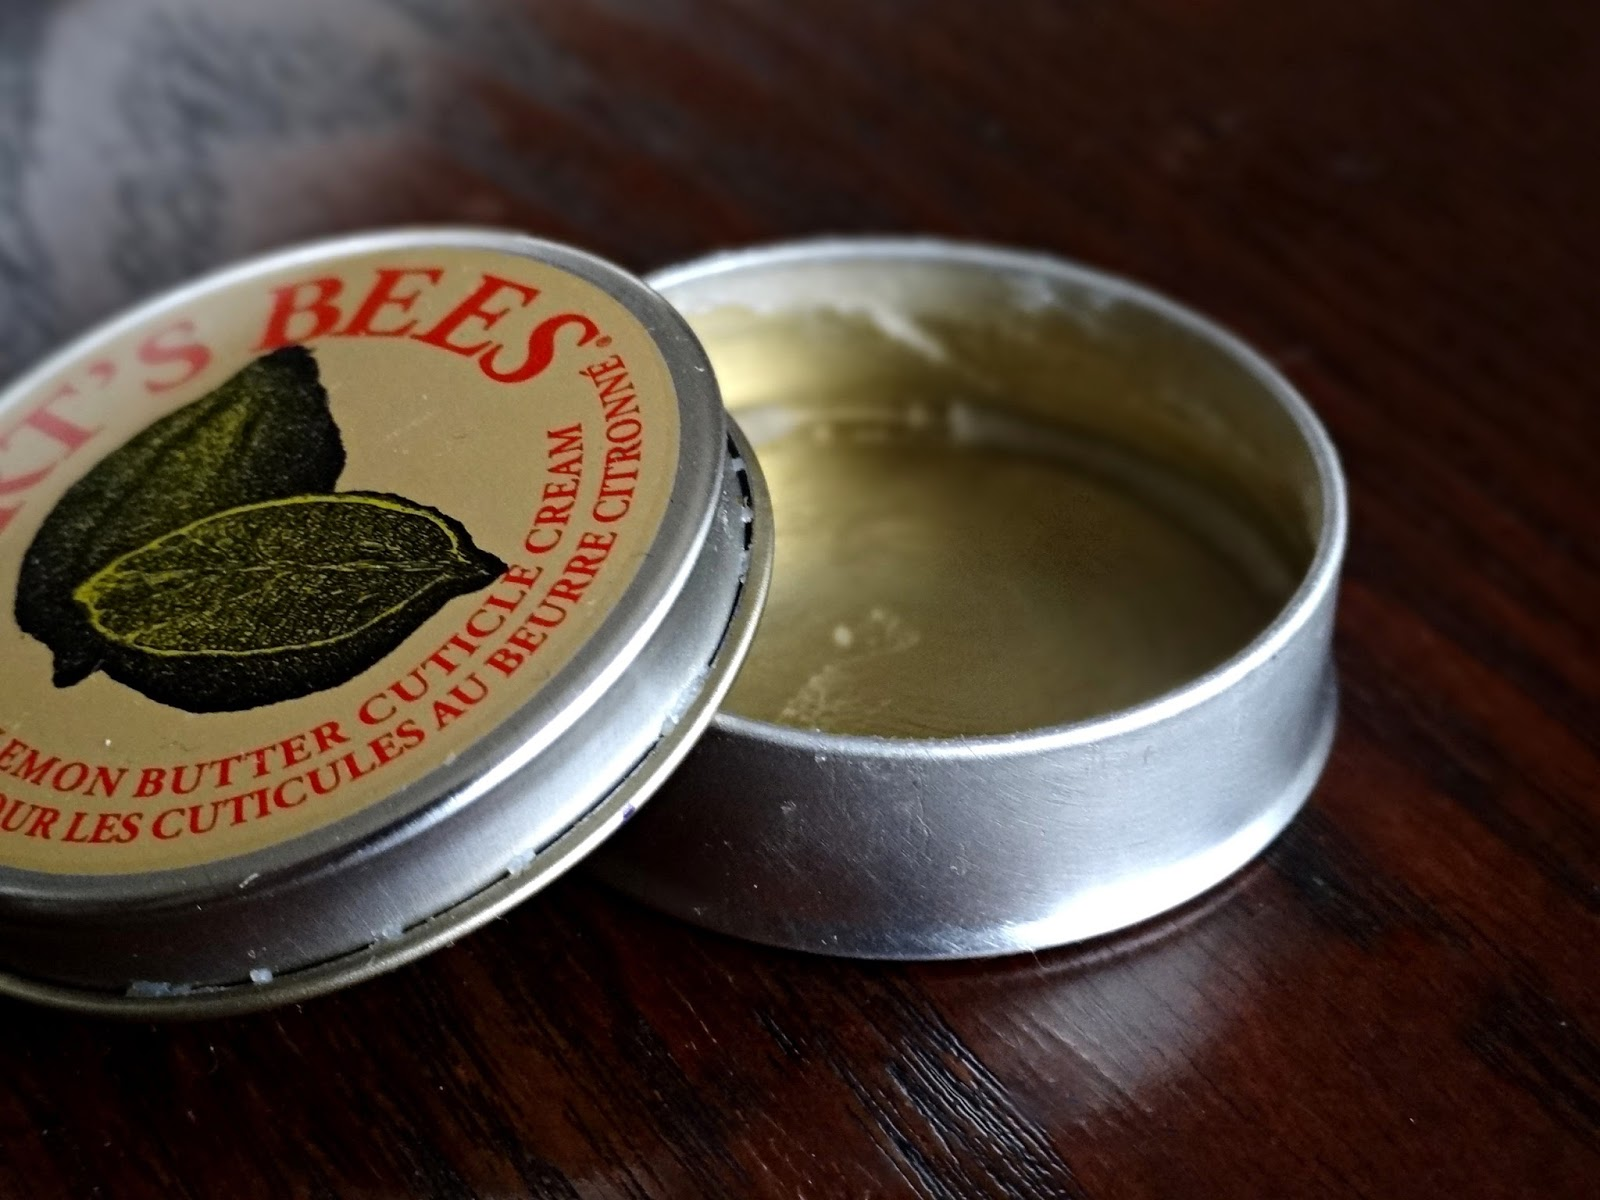 Burt's Bees Lemon Butter Cuticle Cream Review, Photos